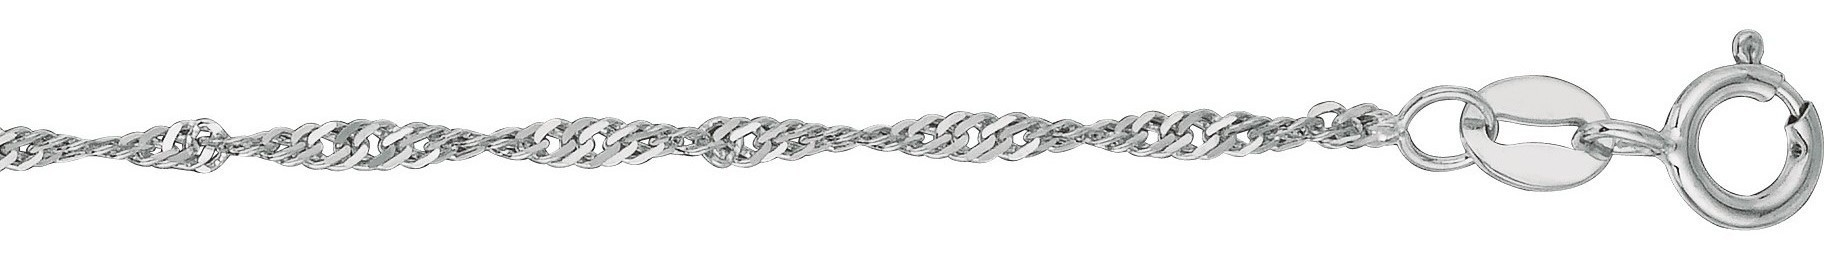 "9"" 10K White Gold 1.5mm (0.06"") Polished Diamond Cut Singapore Chain w/ Spring Ring Clasp"